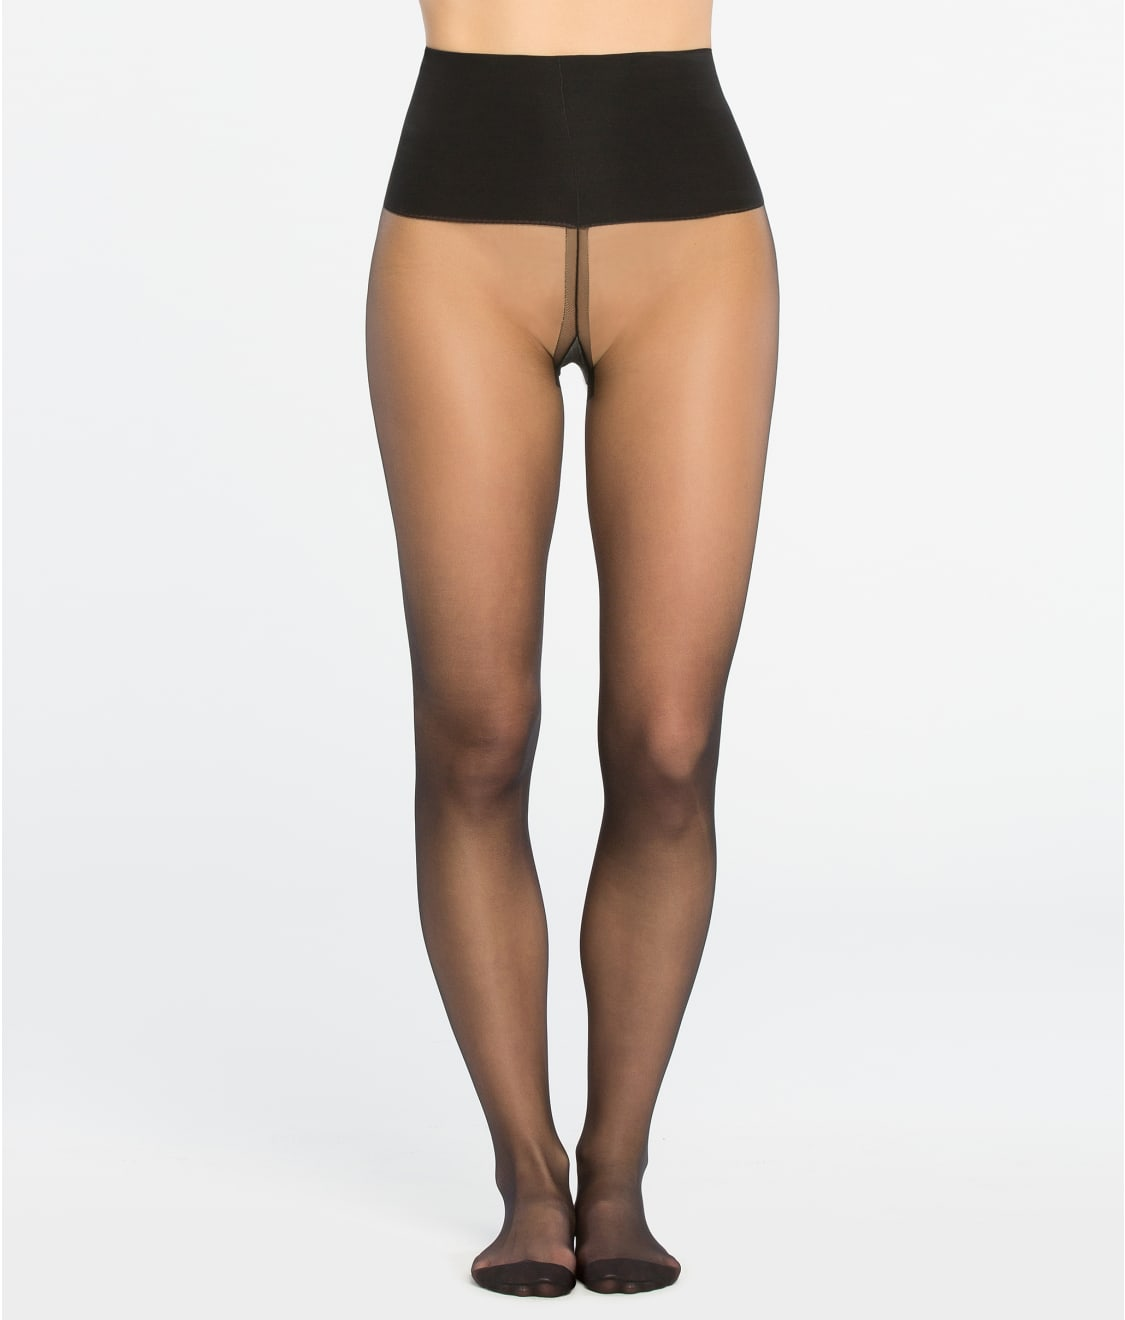 8bb1e6cce1 SPANX Tummy Shaping Sheers Pantyhose